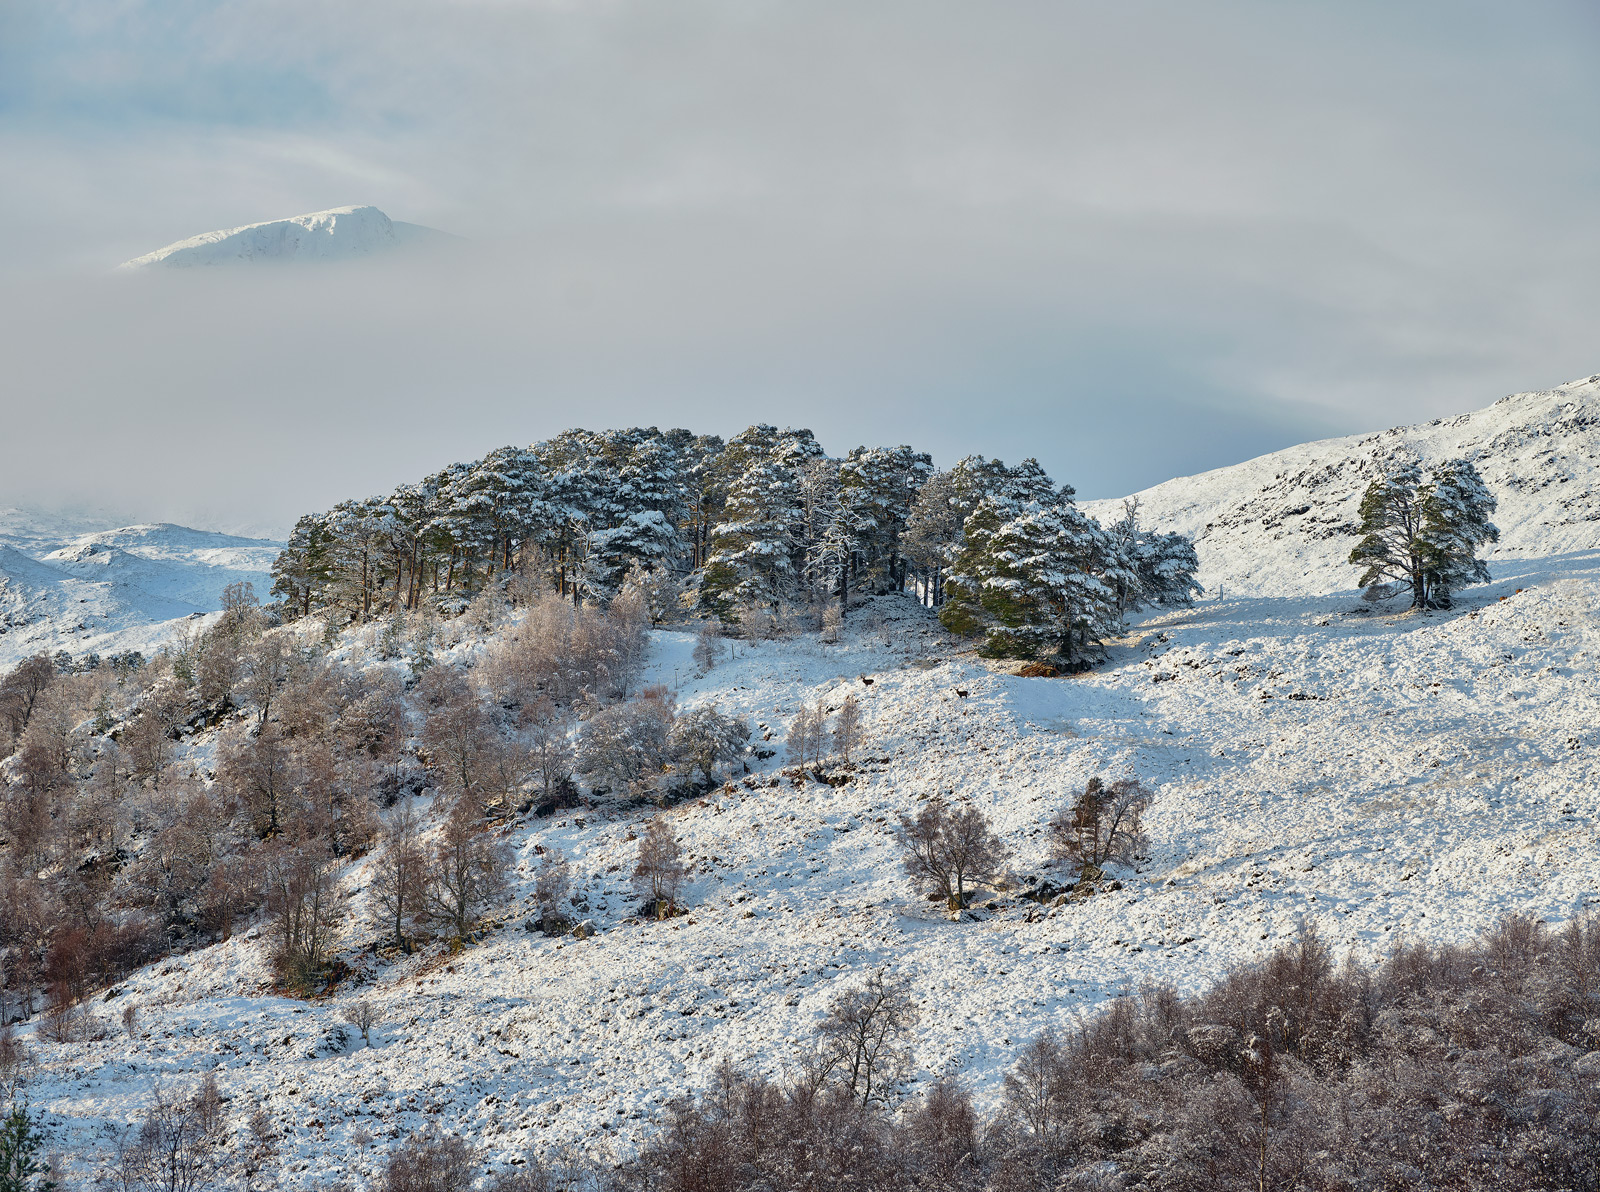 A typical scenic view of Glen Affric taken in the depths of winter with a fresh dump of snow in late afternoon sunlight is elevated...